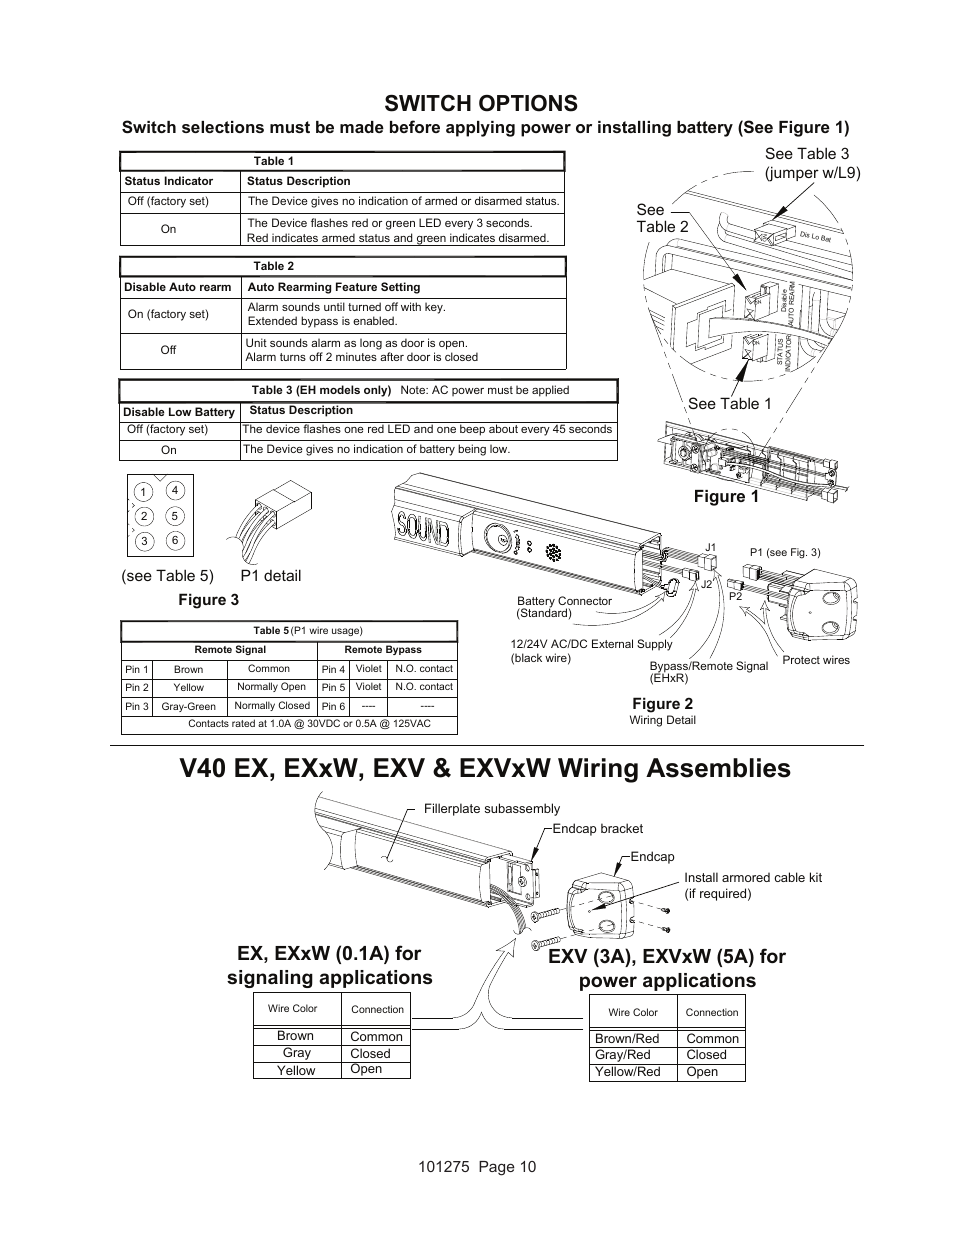 Detex Wiring Diagrams Bgmt Data Pierce Winch Ps534h Diagram V40 Ex Exxw Exv Exvxw Assemblies Switch Options Figure Rh Manualsdir Com Residential Electrical Basic